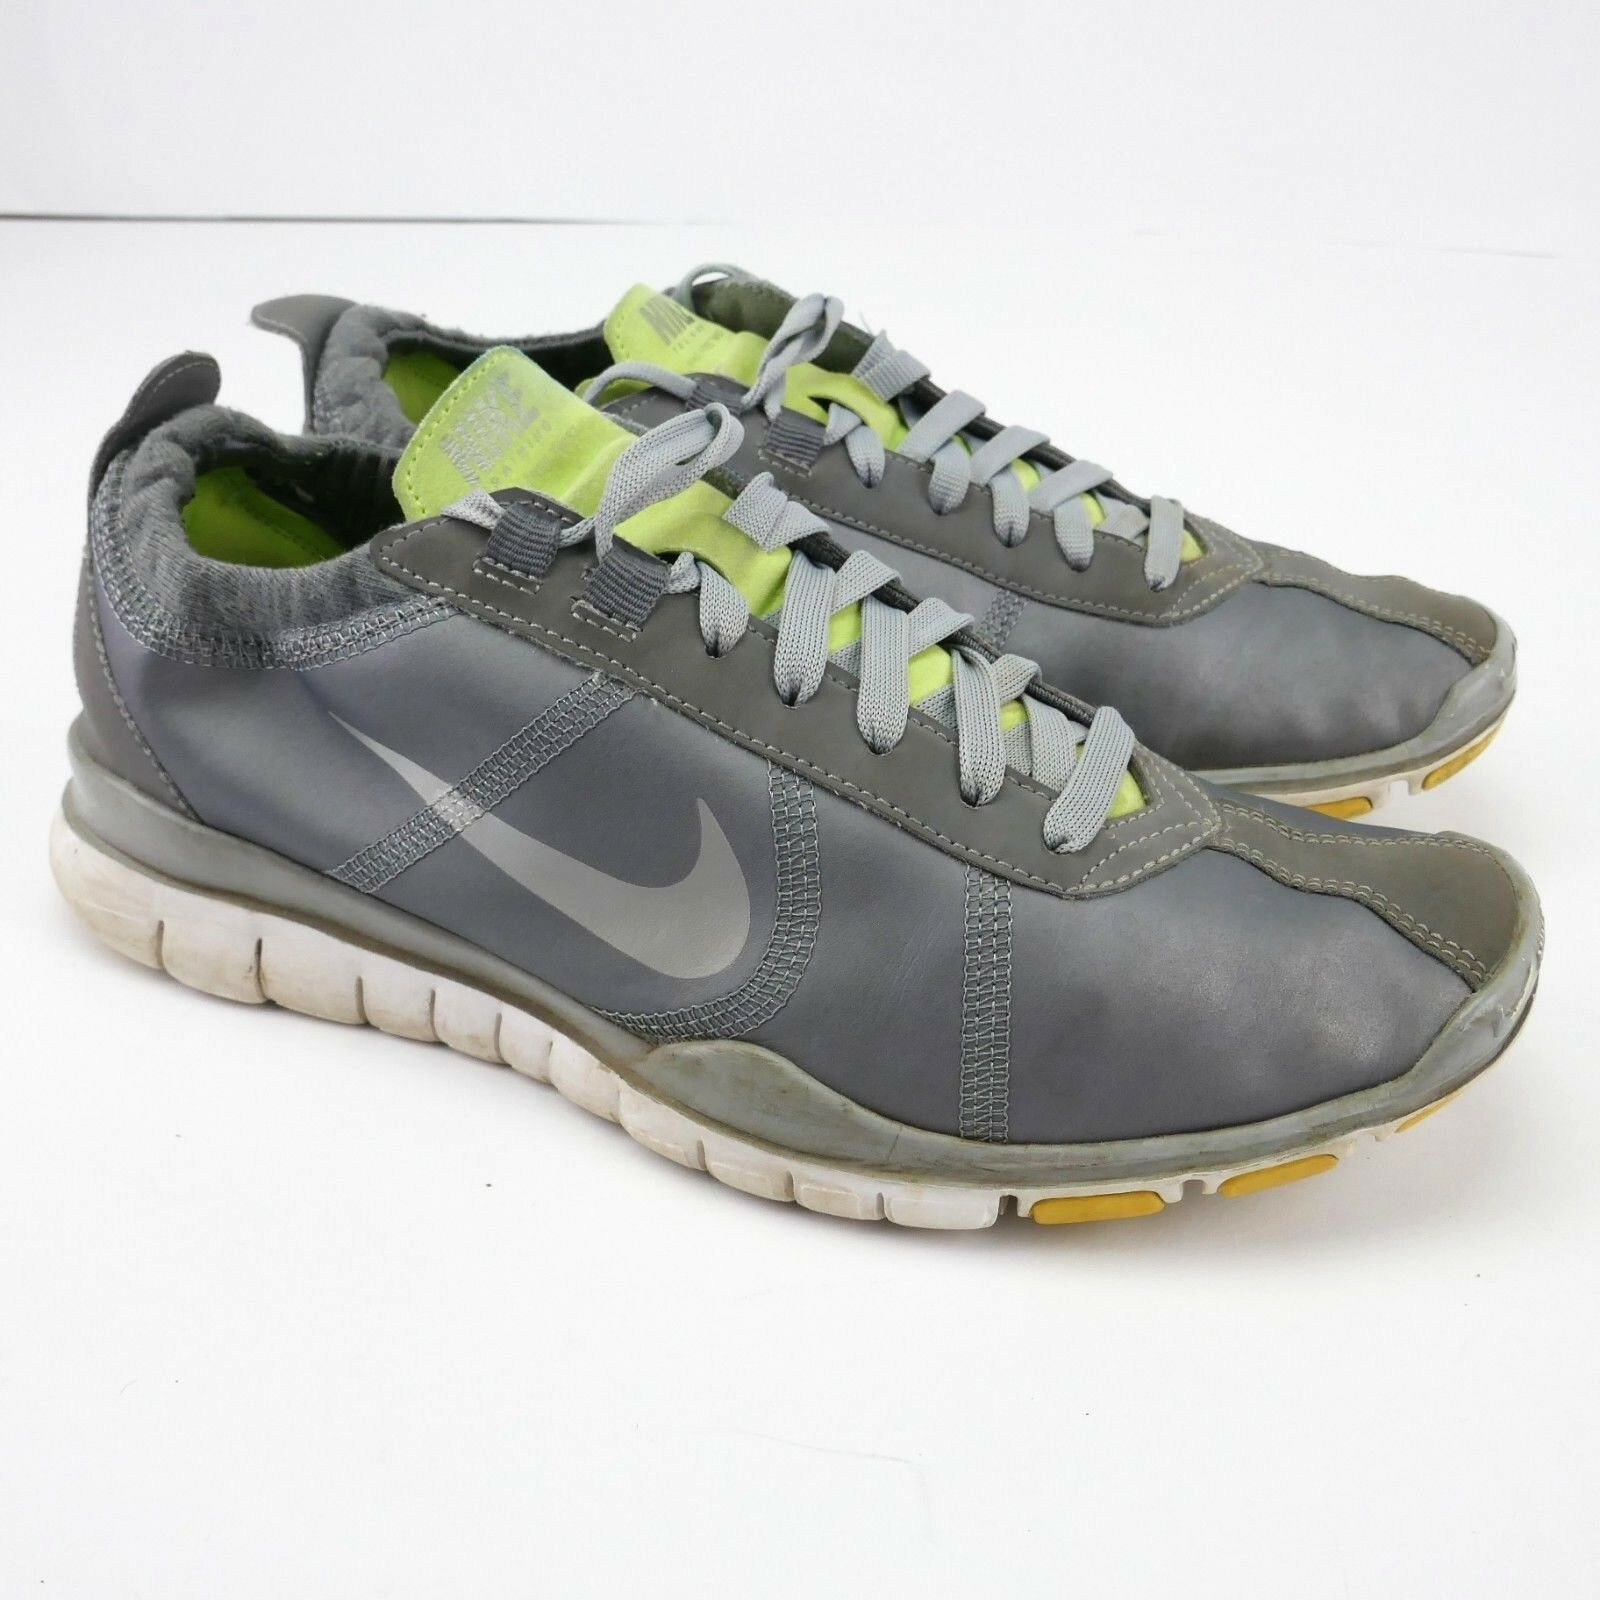 Nike free twist womens sz running 7 sneakers lightweight running sz shoes metallic grey 4f3684